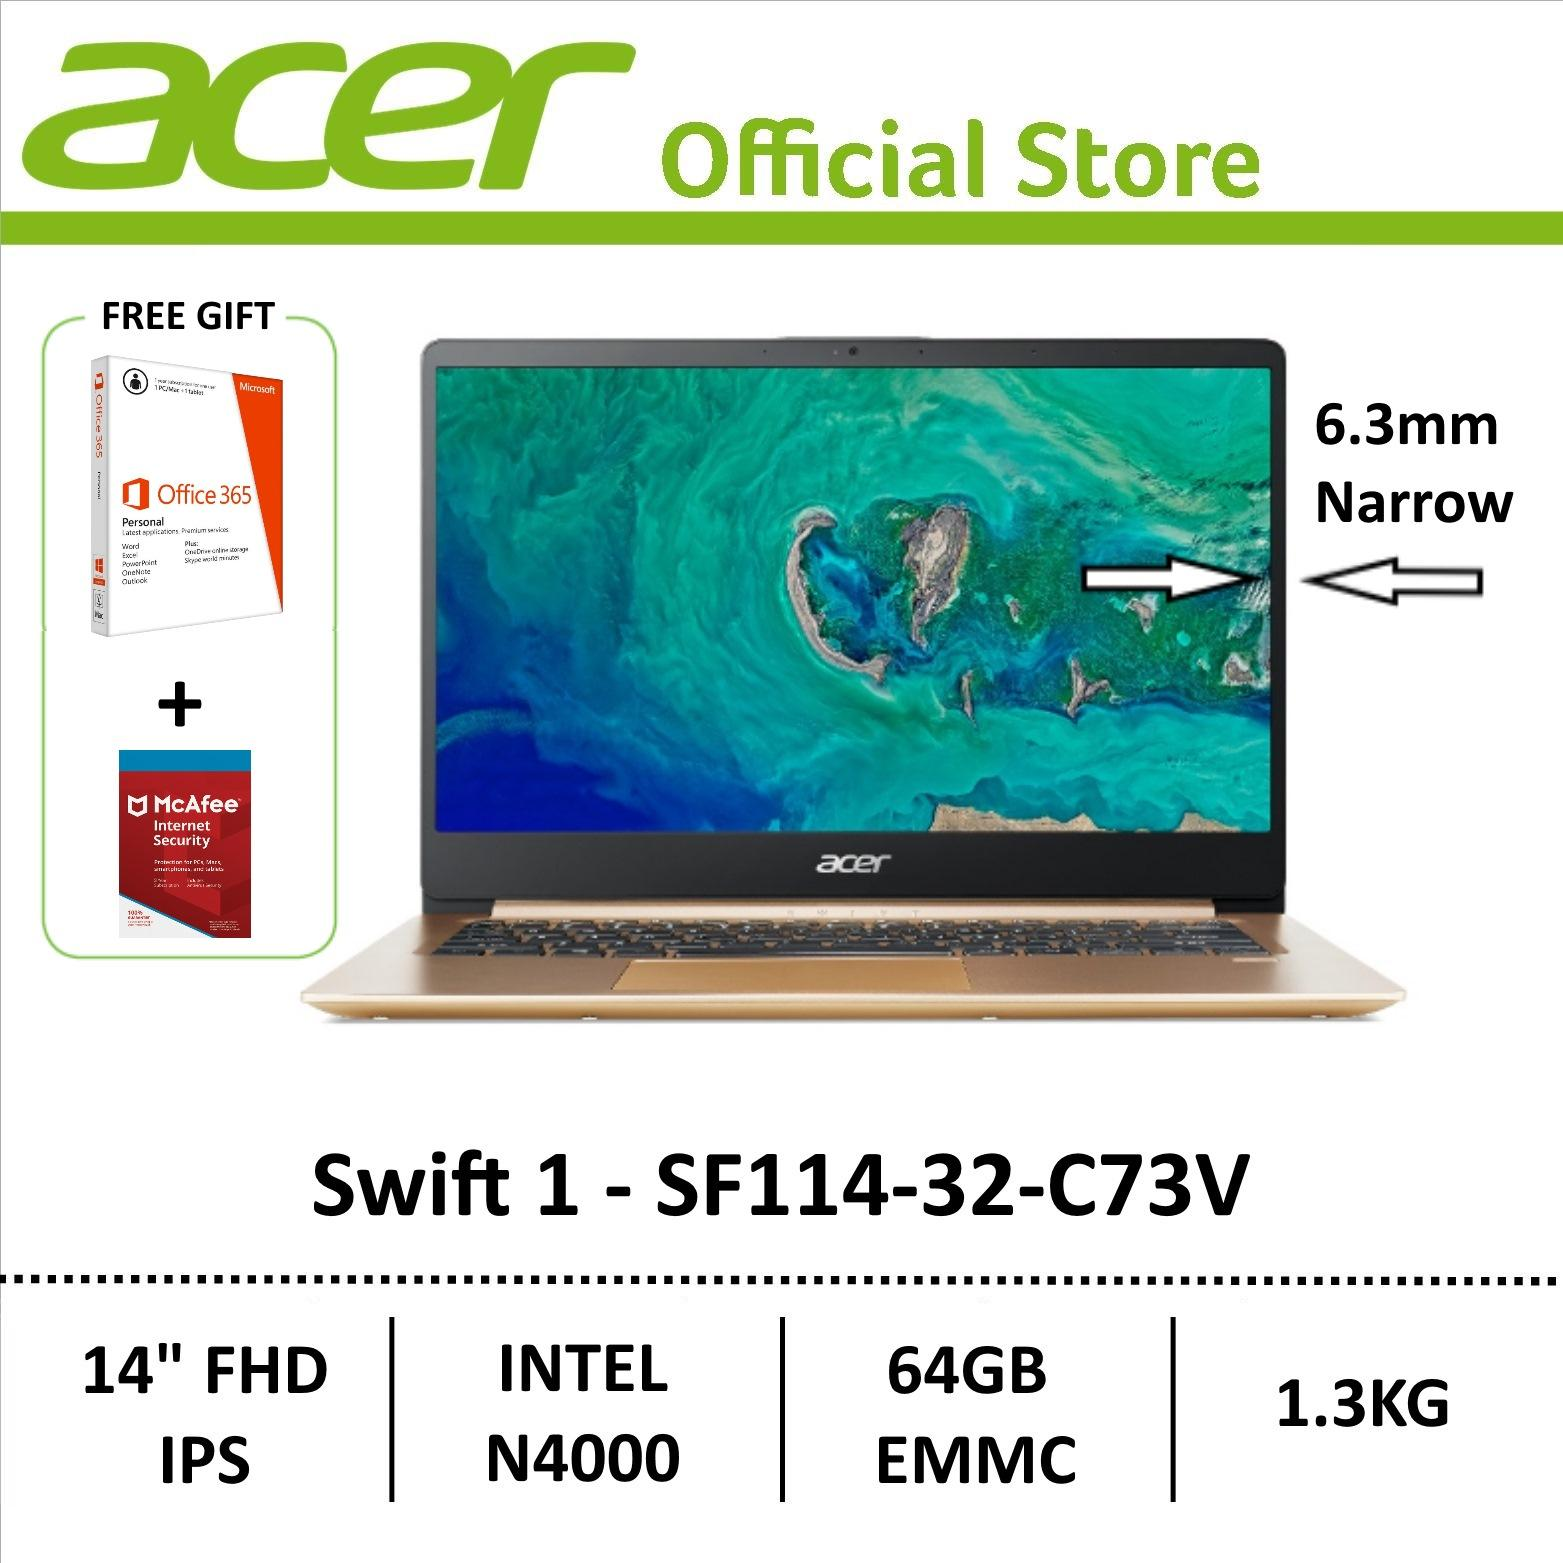 [Online Exclusive] Acer Swift 1 SF114-32-C73V Laptop (GOLD) - FREE MSO 365 PERSONAL